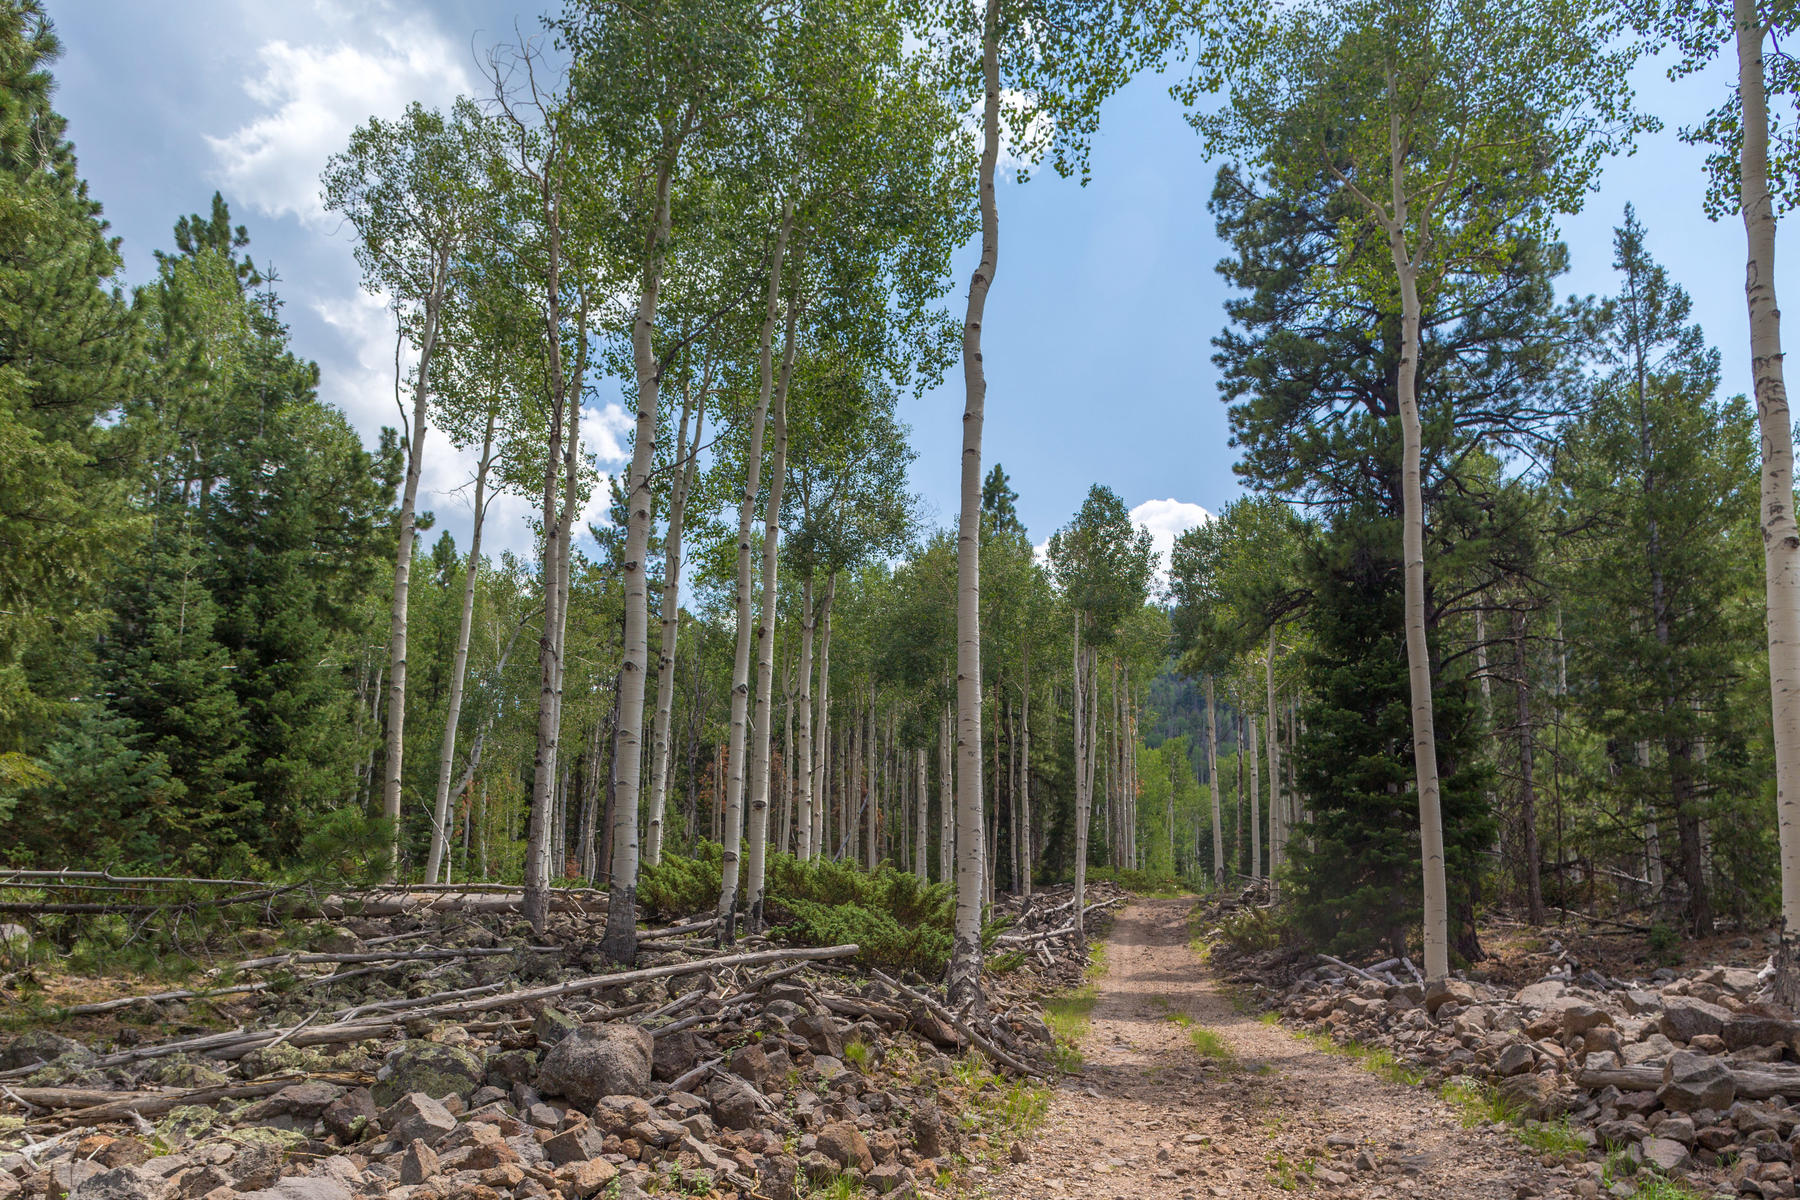 Land for Sale at Quaking Aspens Wooded Retreat Lot 11 Tax ID #01-0032-0011, Beaver, Utah 84713 United States